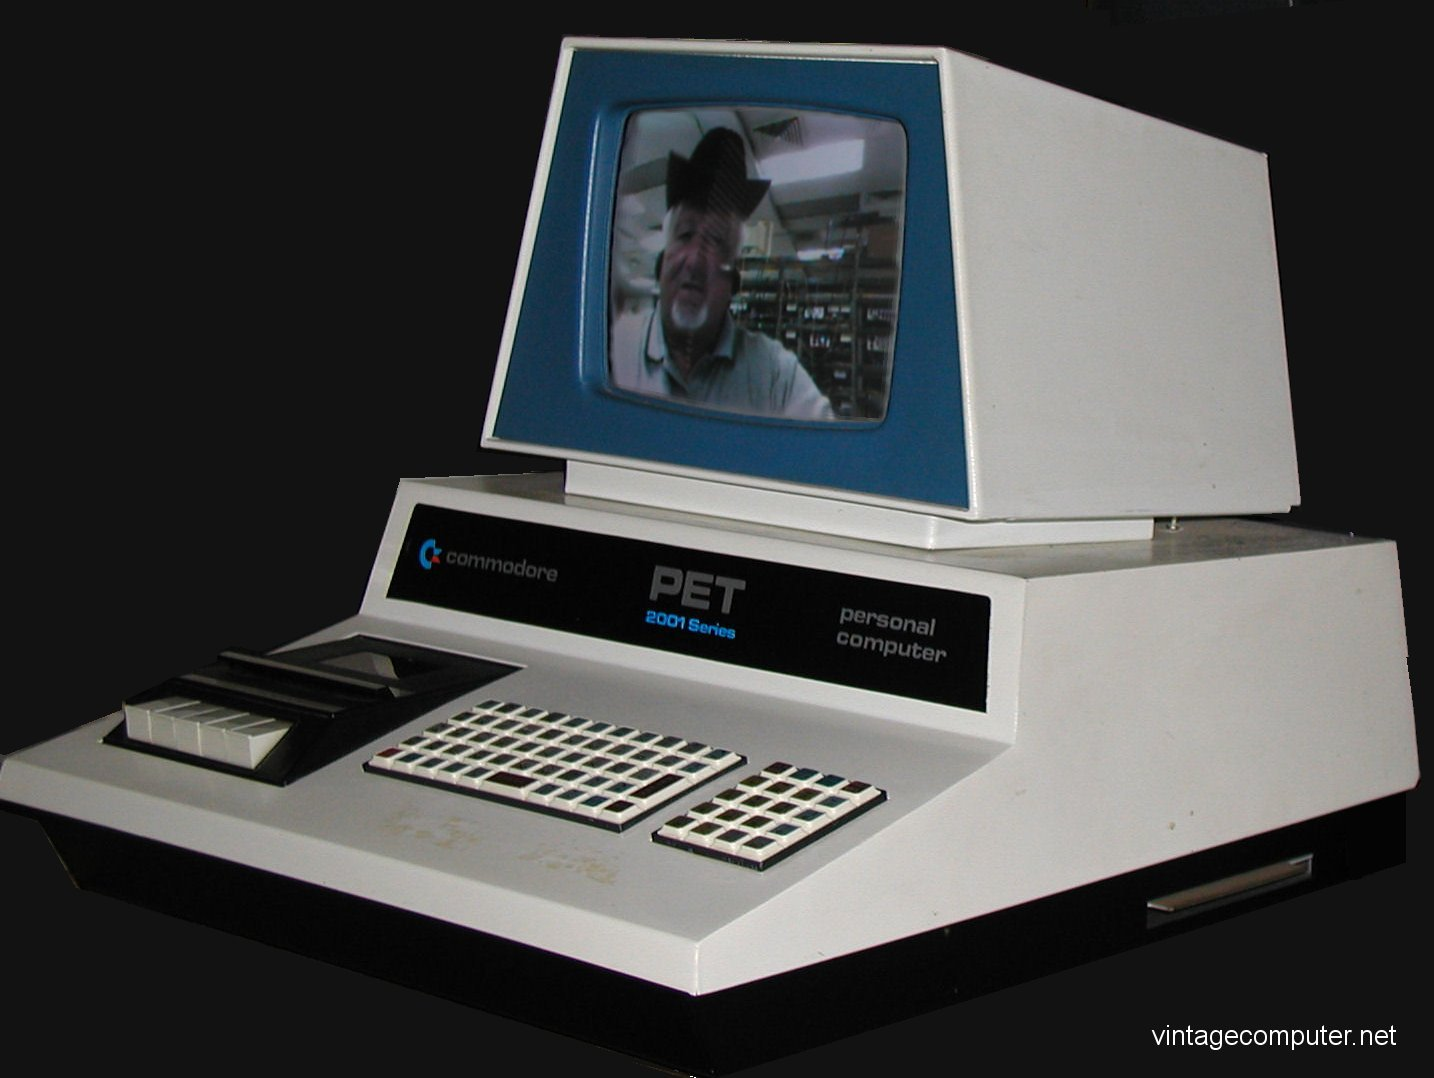 VintageComputer.net - Commodore PET 30th Anniversary |